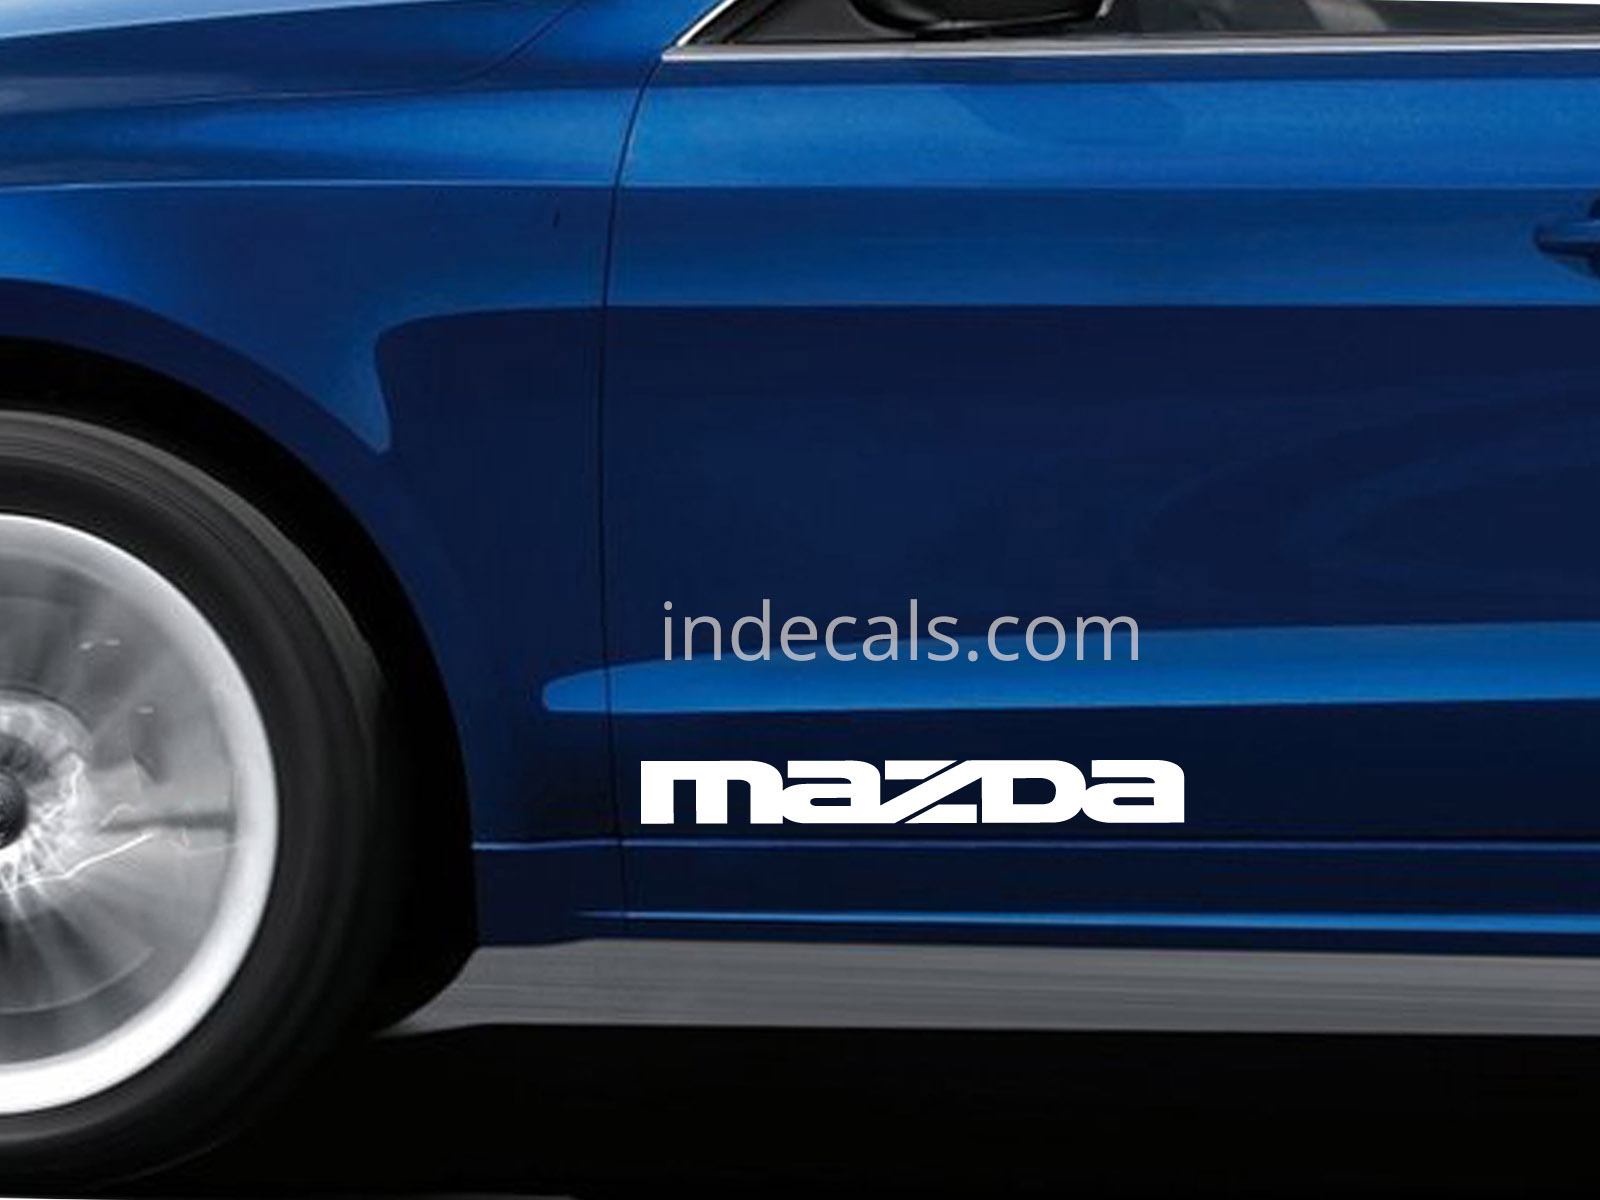 2 x Mazda Stickers for Doors Large - White